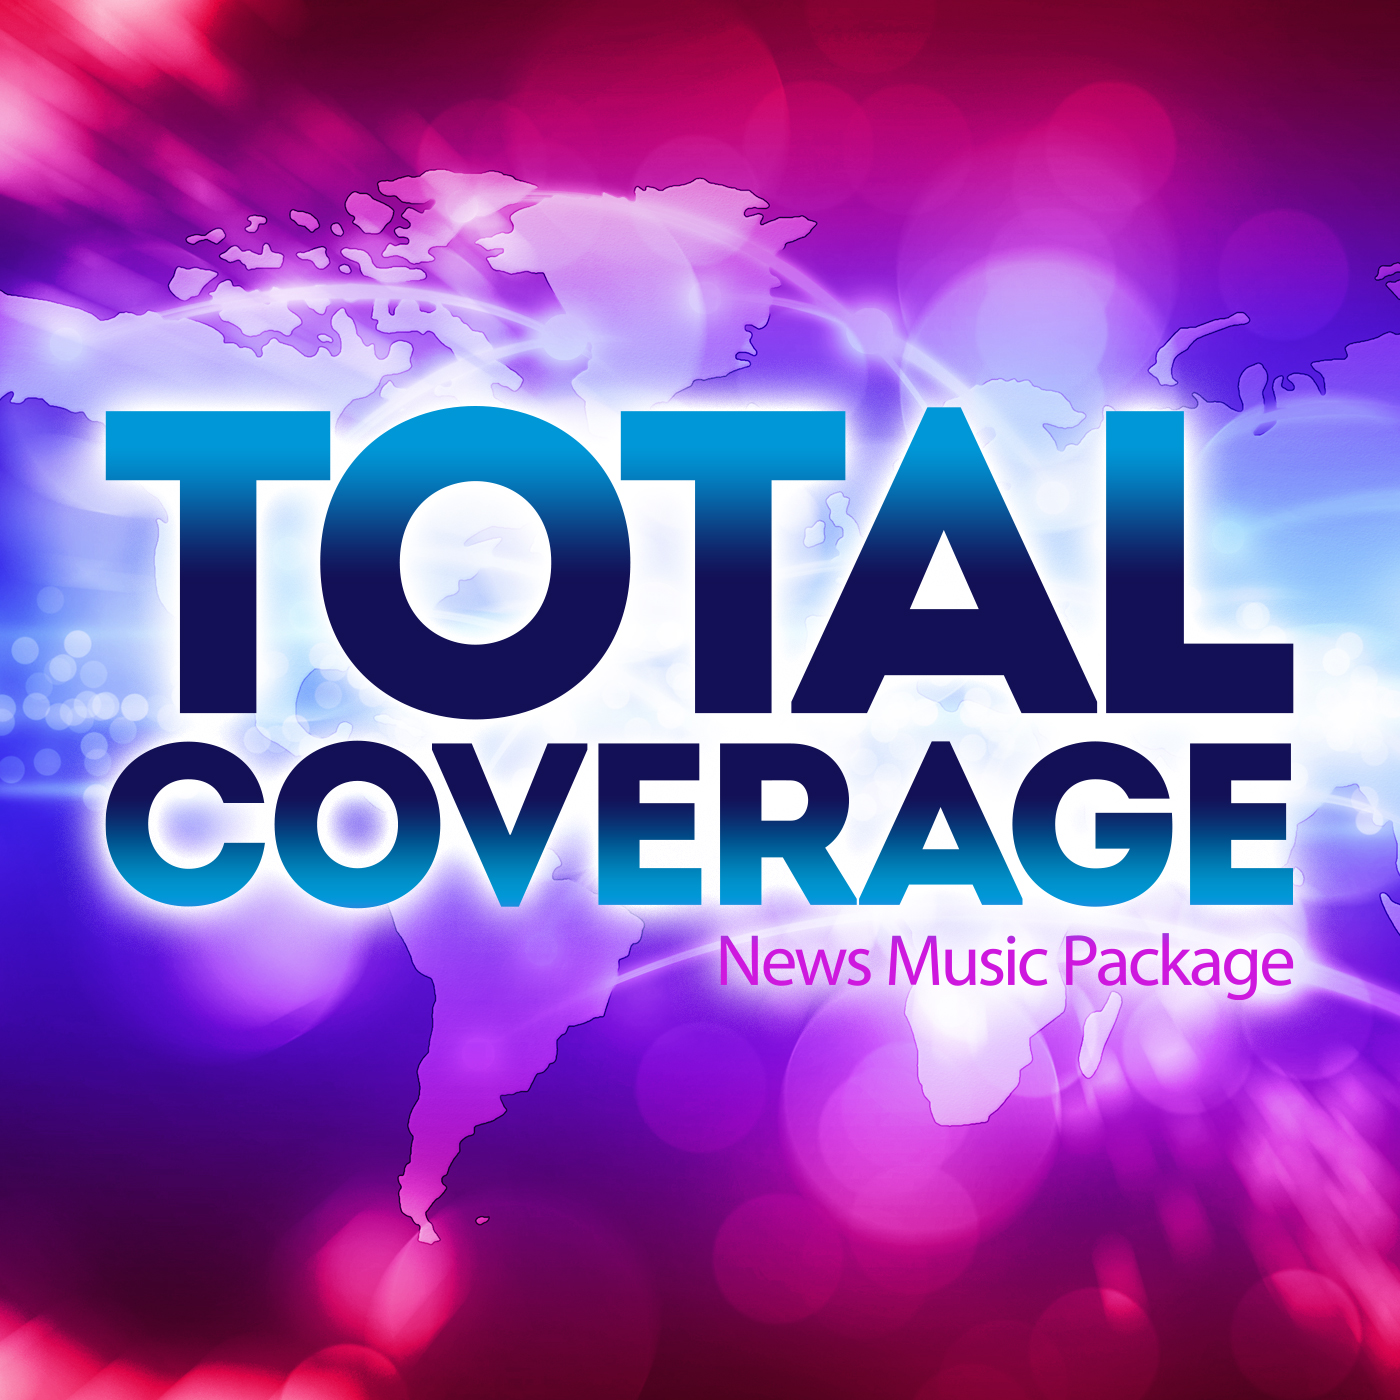 Total Coverage News Music Package